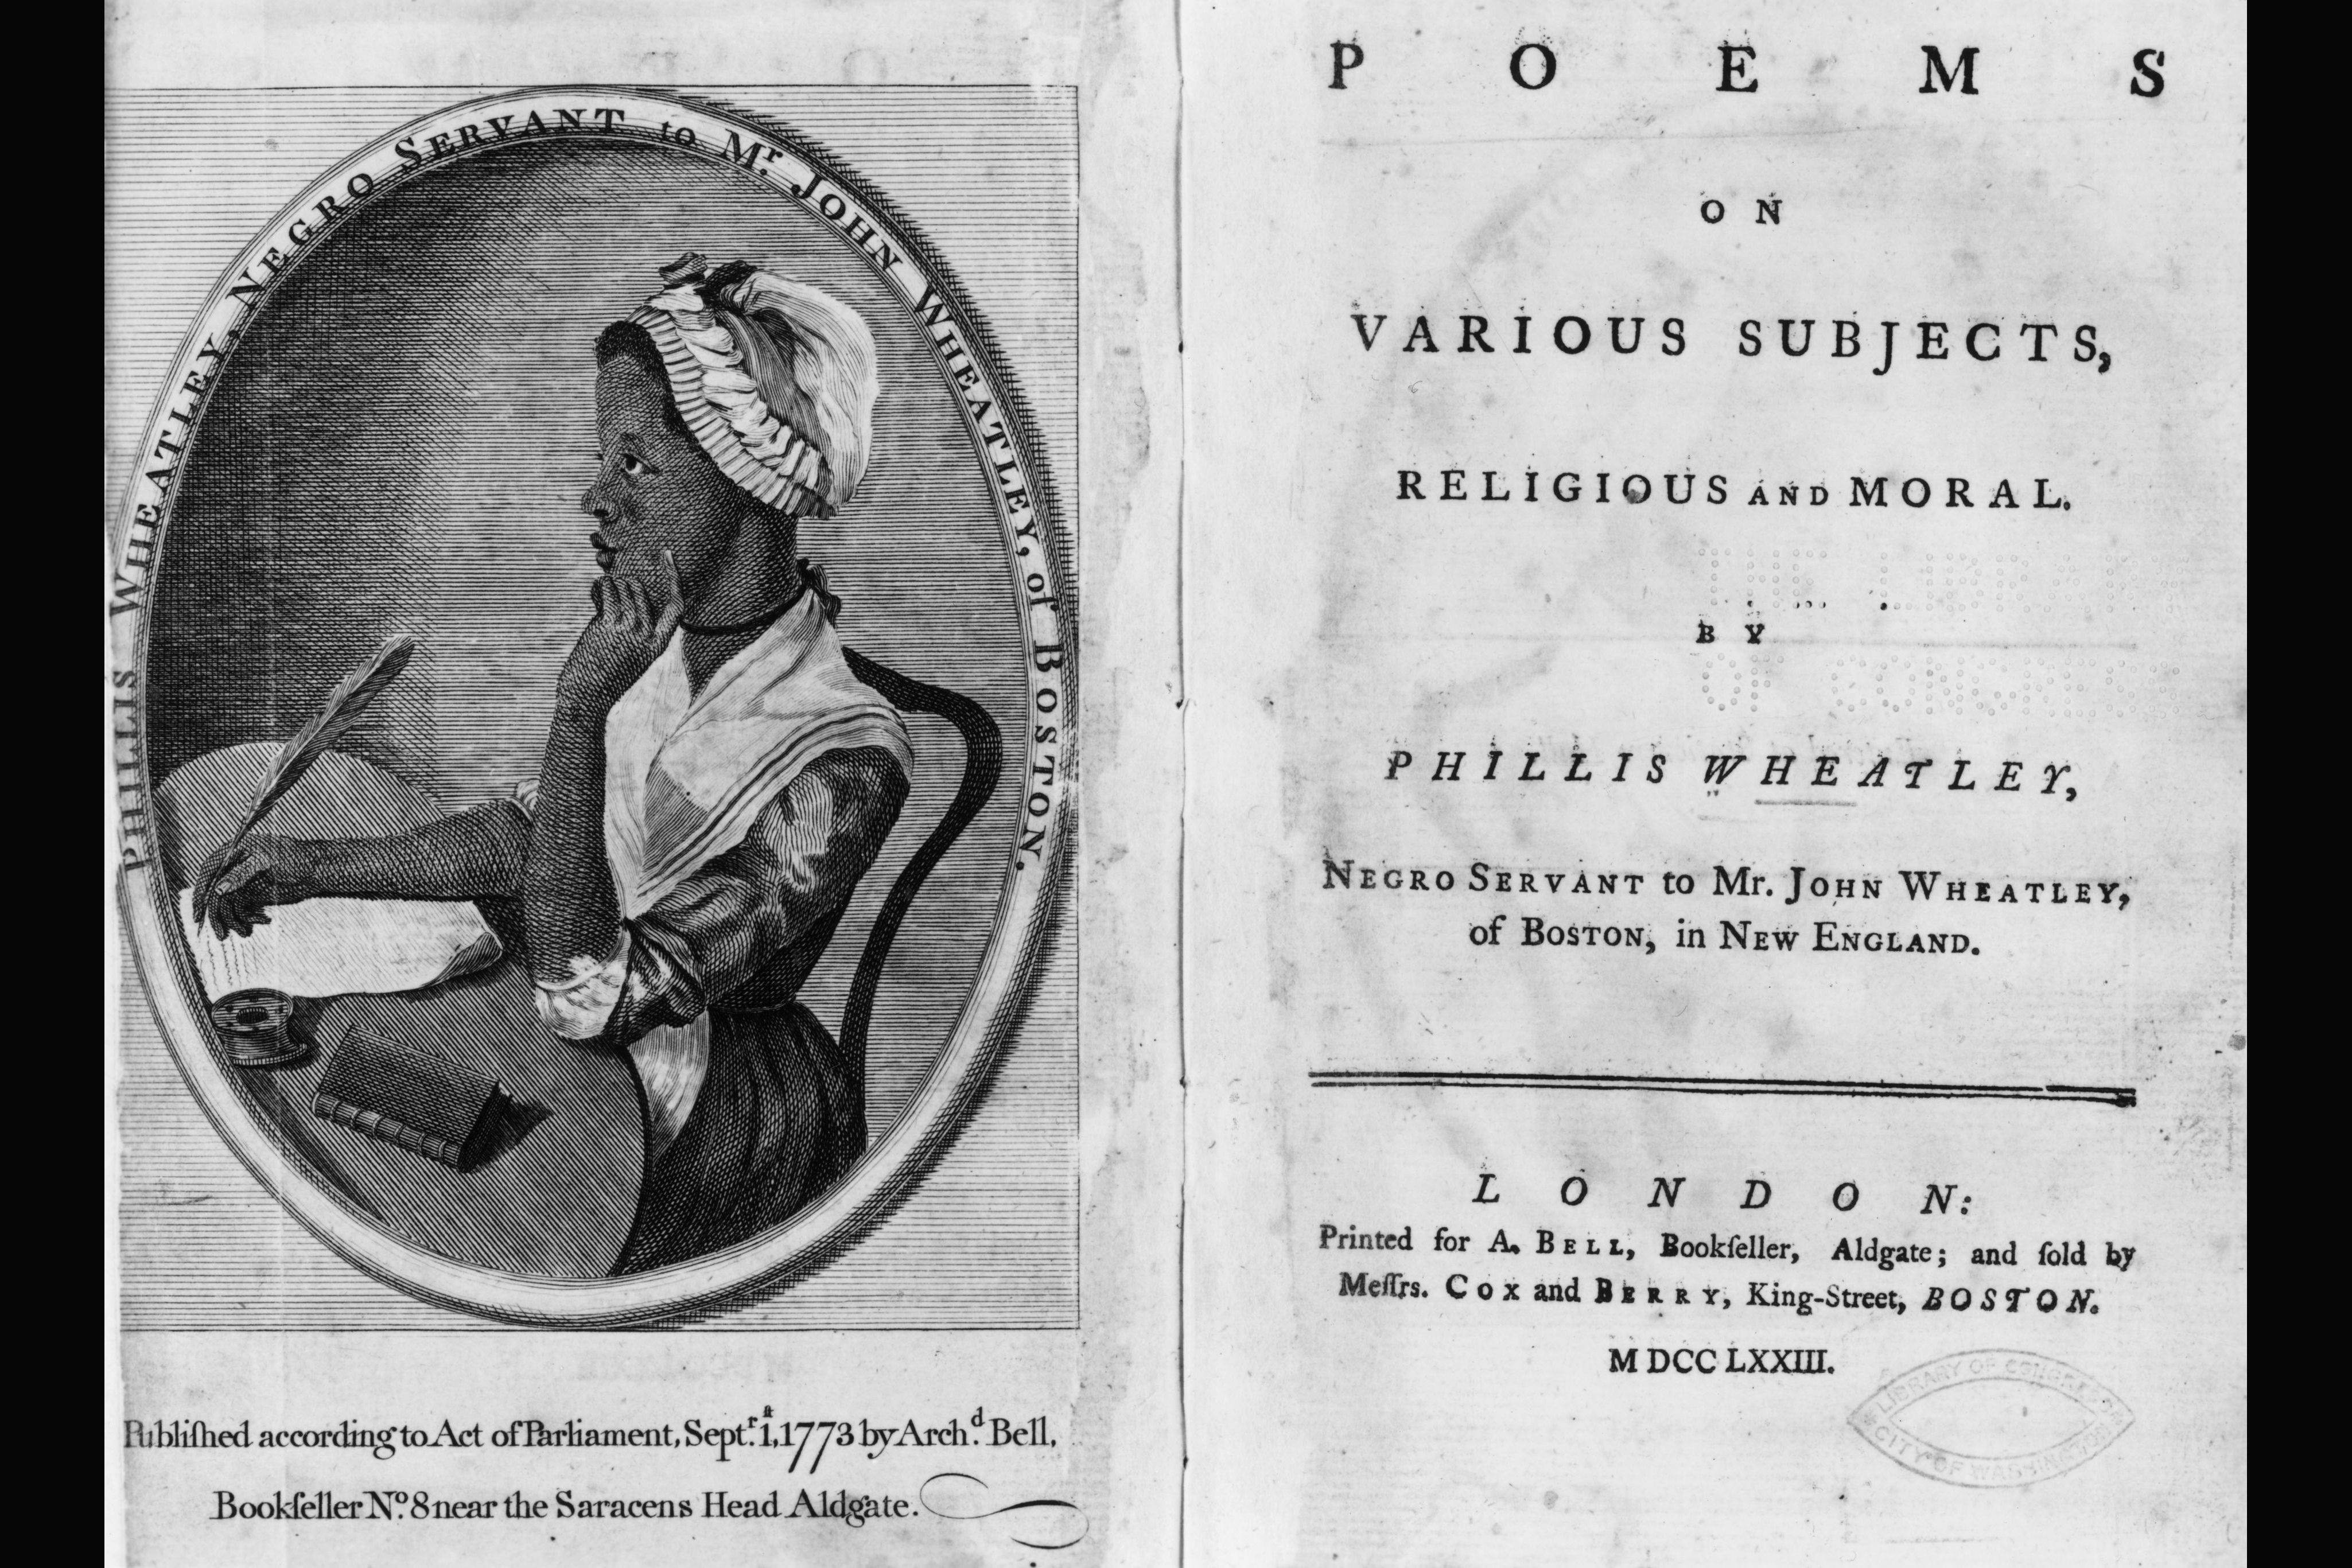 slave poet phillis wheatley an analysis of her poems